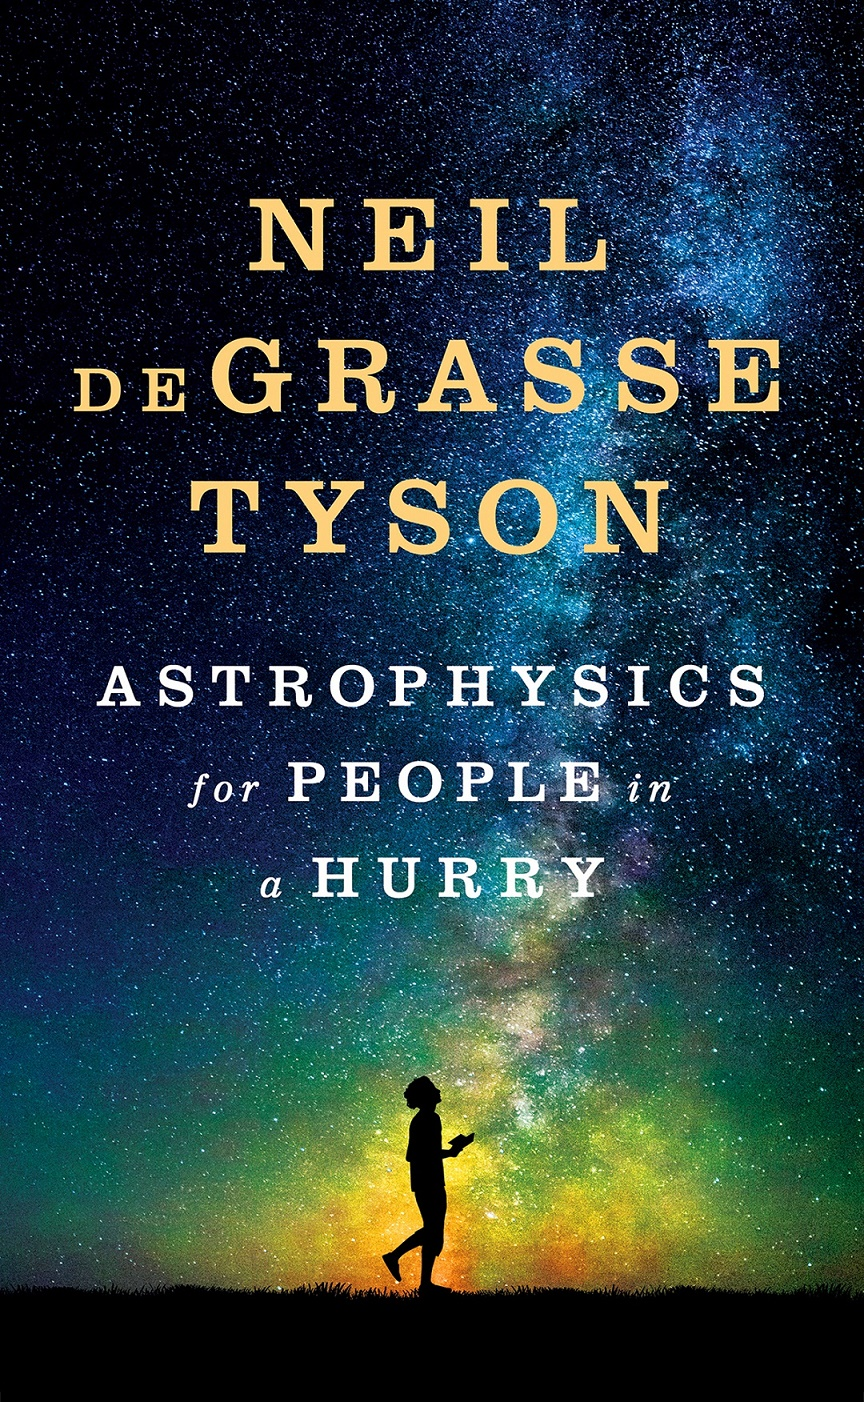 Astrophysics for People in a Hurry - Neil deGrasse Tyson [kindle] [mobi]